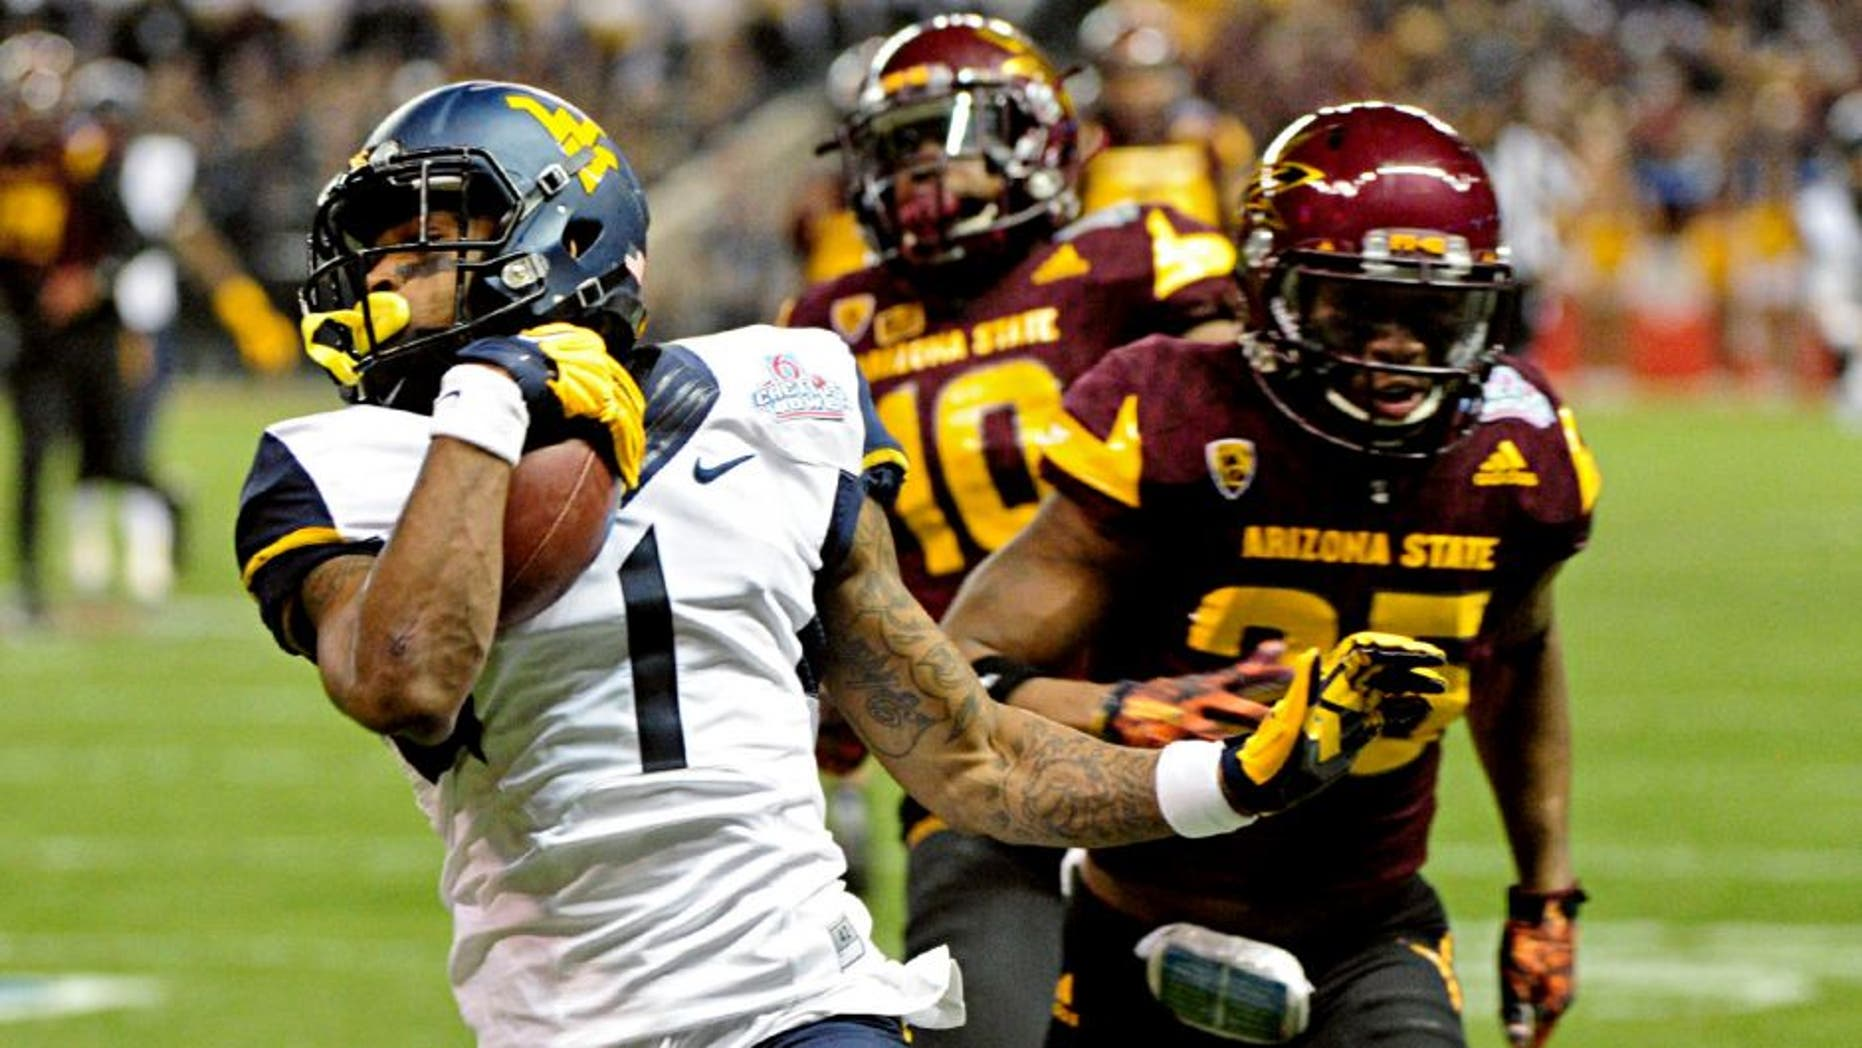 Jan 2, 2016; Phoenix, AZ, USA; West Virginia Mountaineers wide receiver Shelton Gibson (1) runs for a touchdown as Arizona State Sun Devils defensive back Kweishi Brown (10) and defensive back Kareem Orr (25) pursue during the first half at Chase Field during the Cactus Bowl. Mandatory Credit: Matt Kartozian-USA TODAY Sports